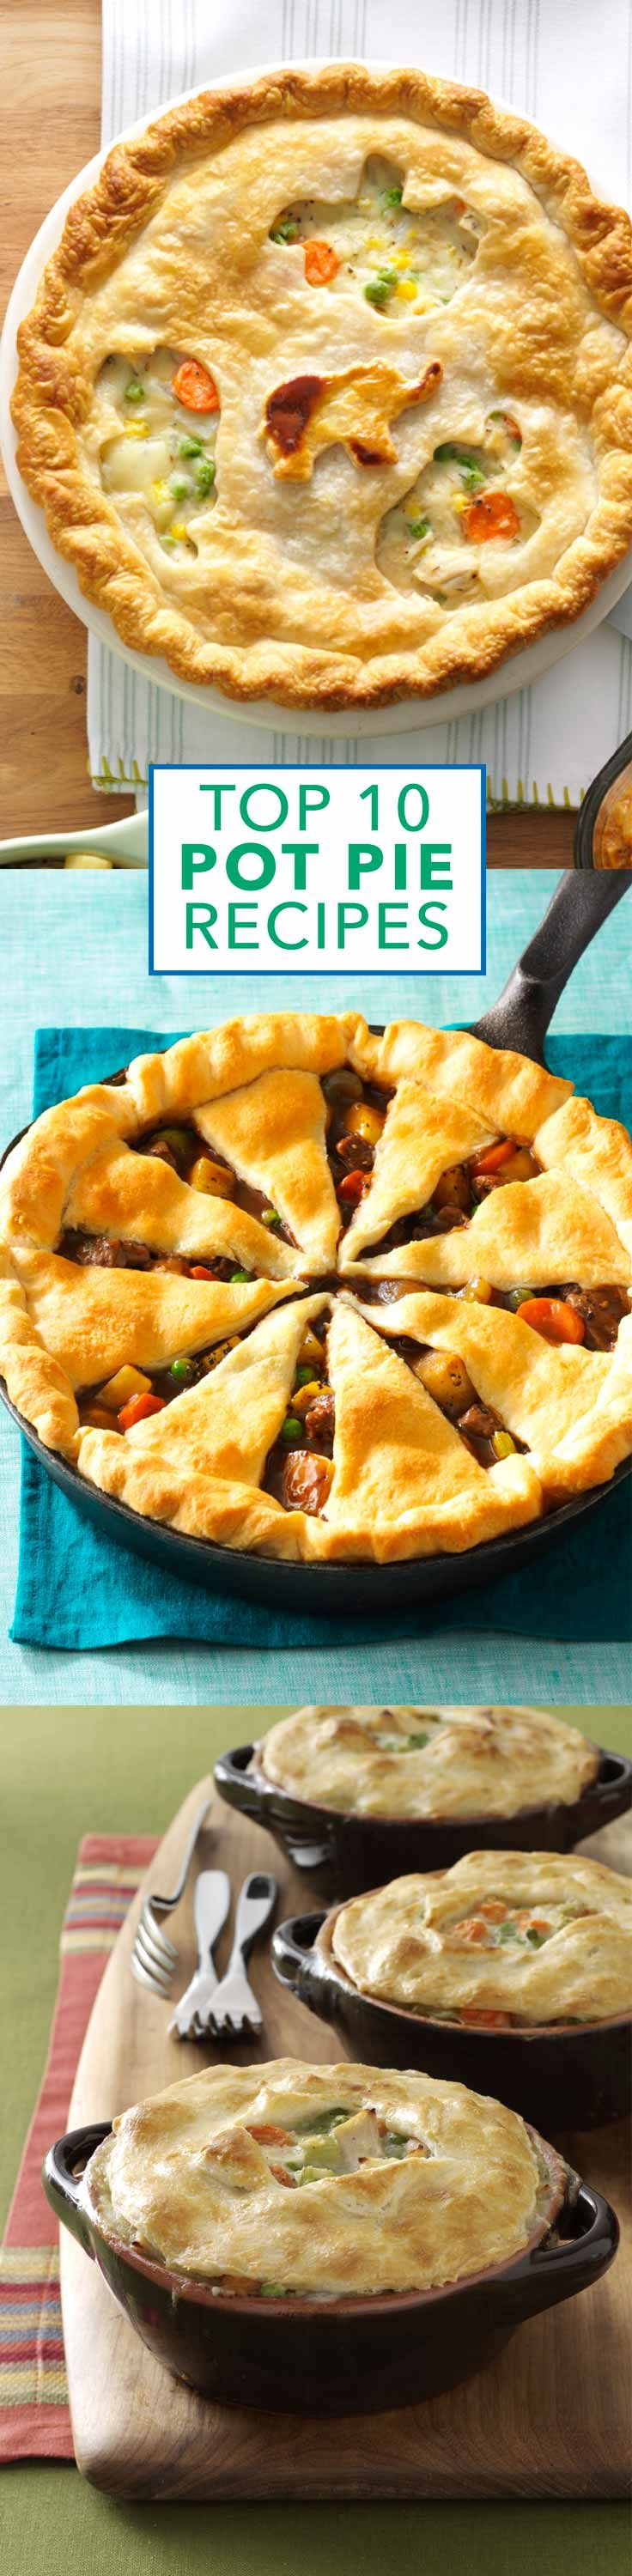 Top 10 Potpie Recipes from Taste of Home